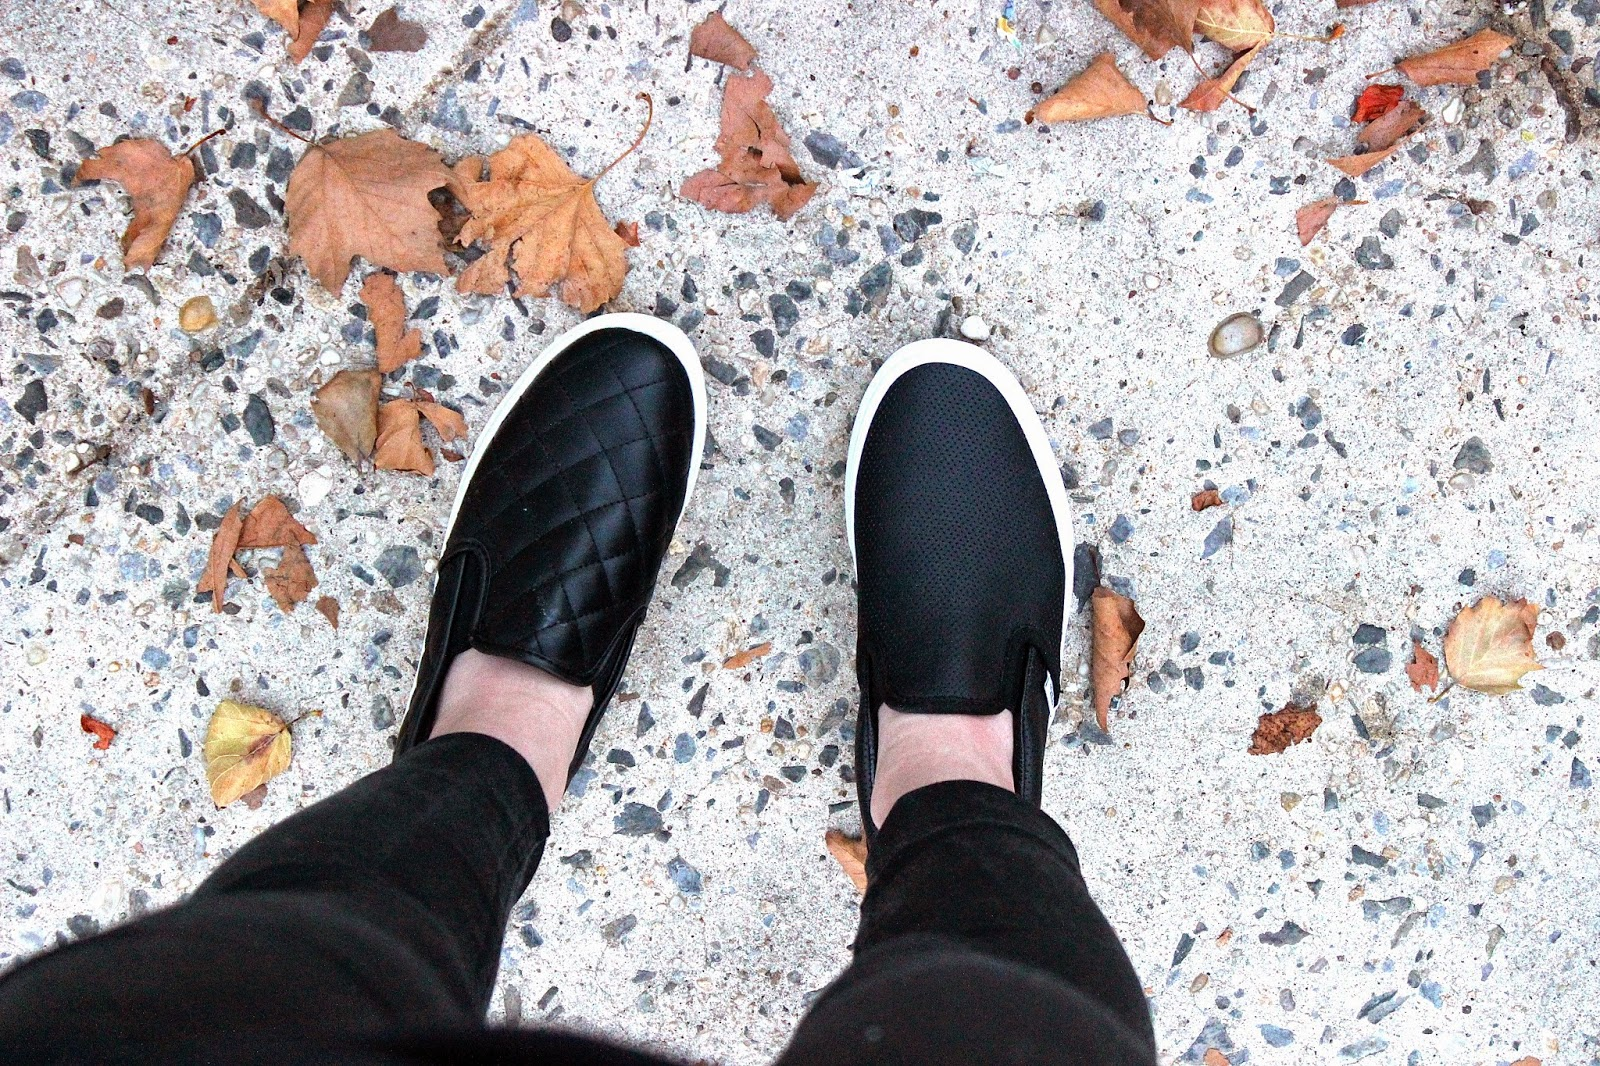 REVIEW : Vans Perforated Leather Slip Ons VS Target Quilted Slip Ons